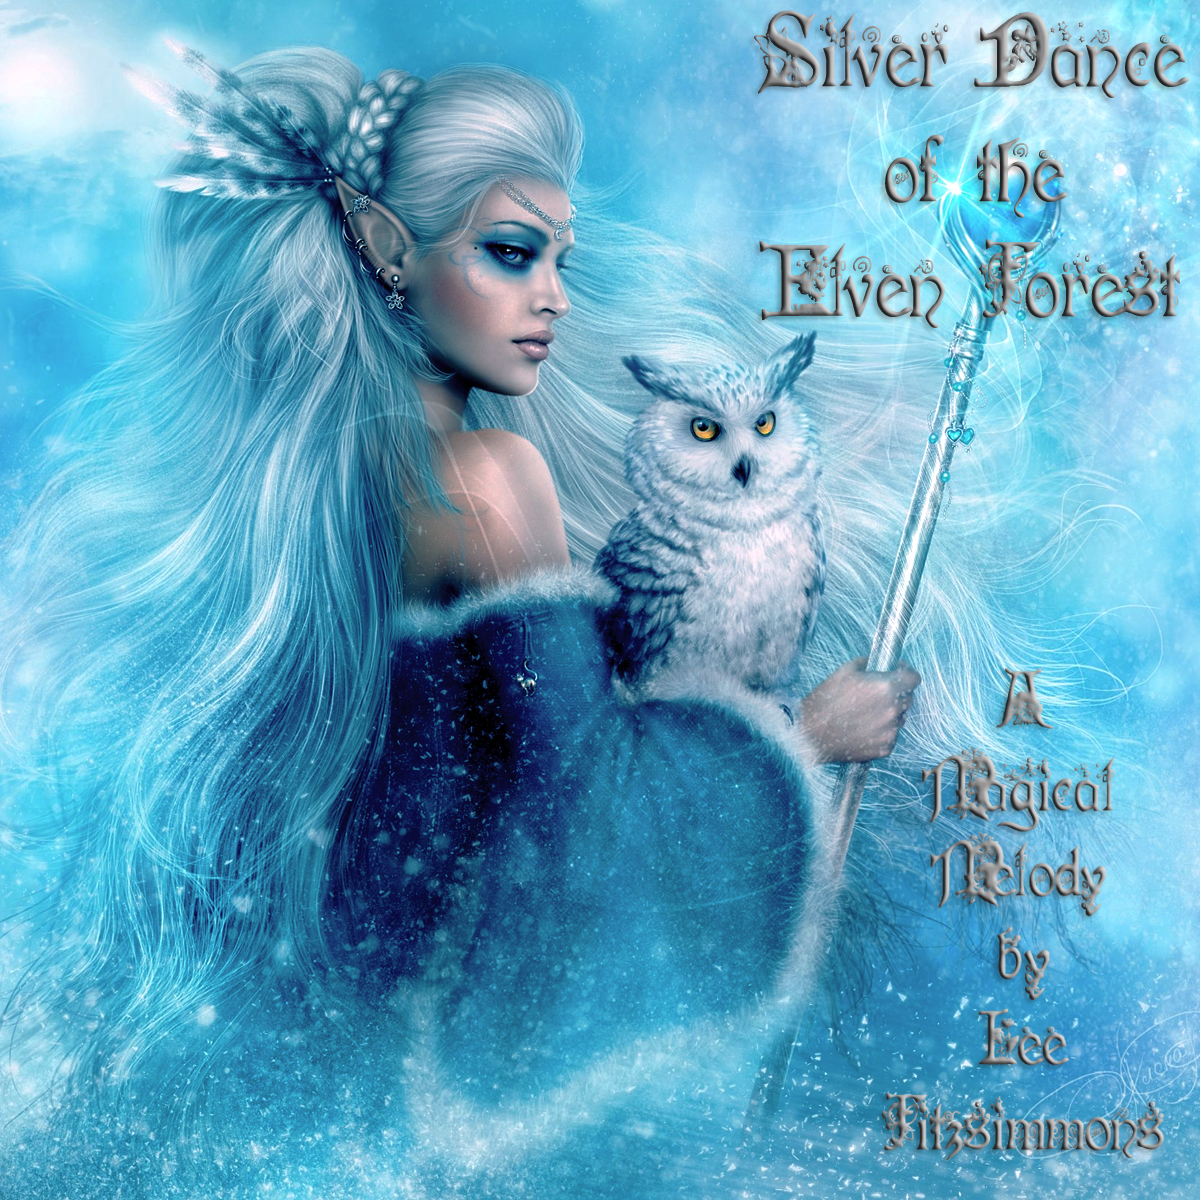 Silver Dance of the Elven Forest